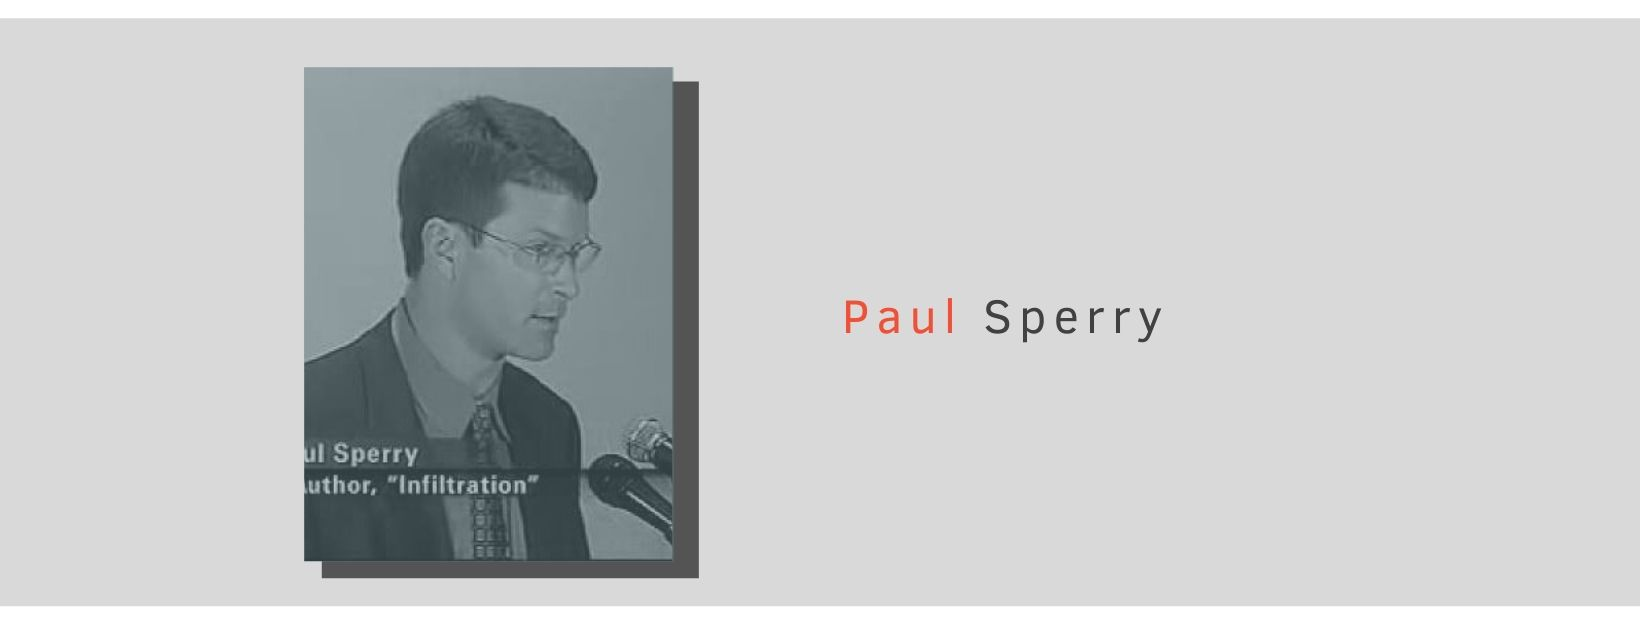 Photo of Paul Sperry, conservative journalist